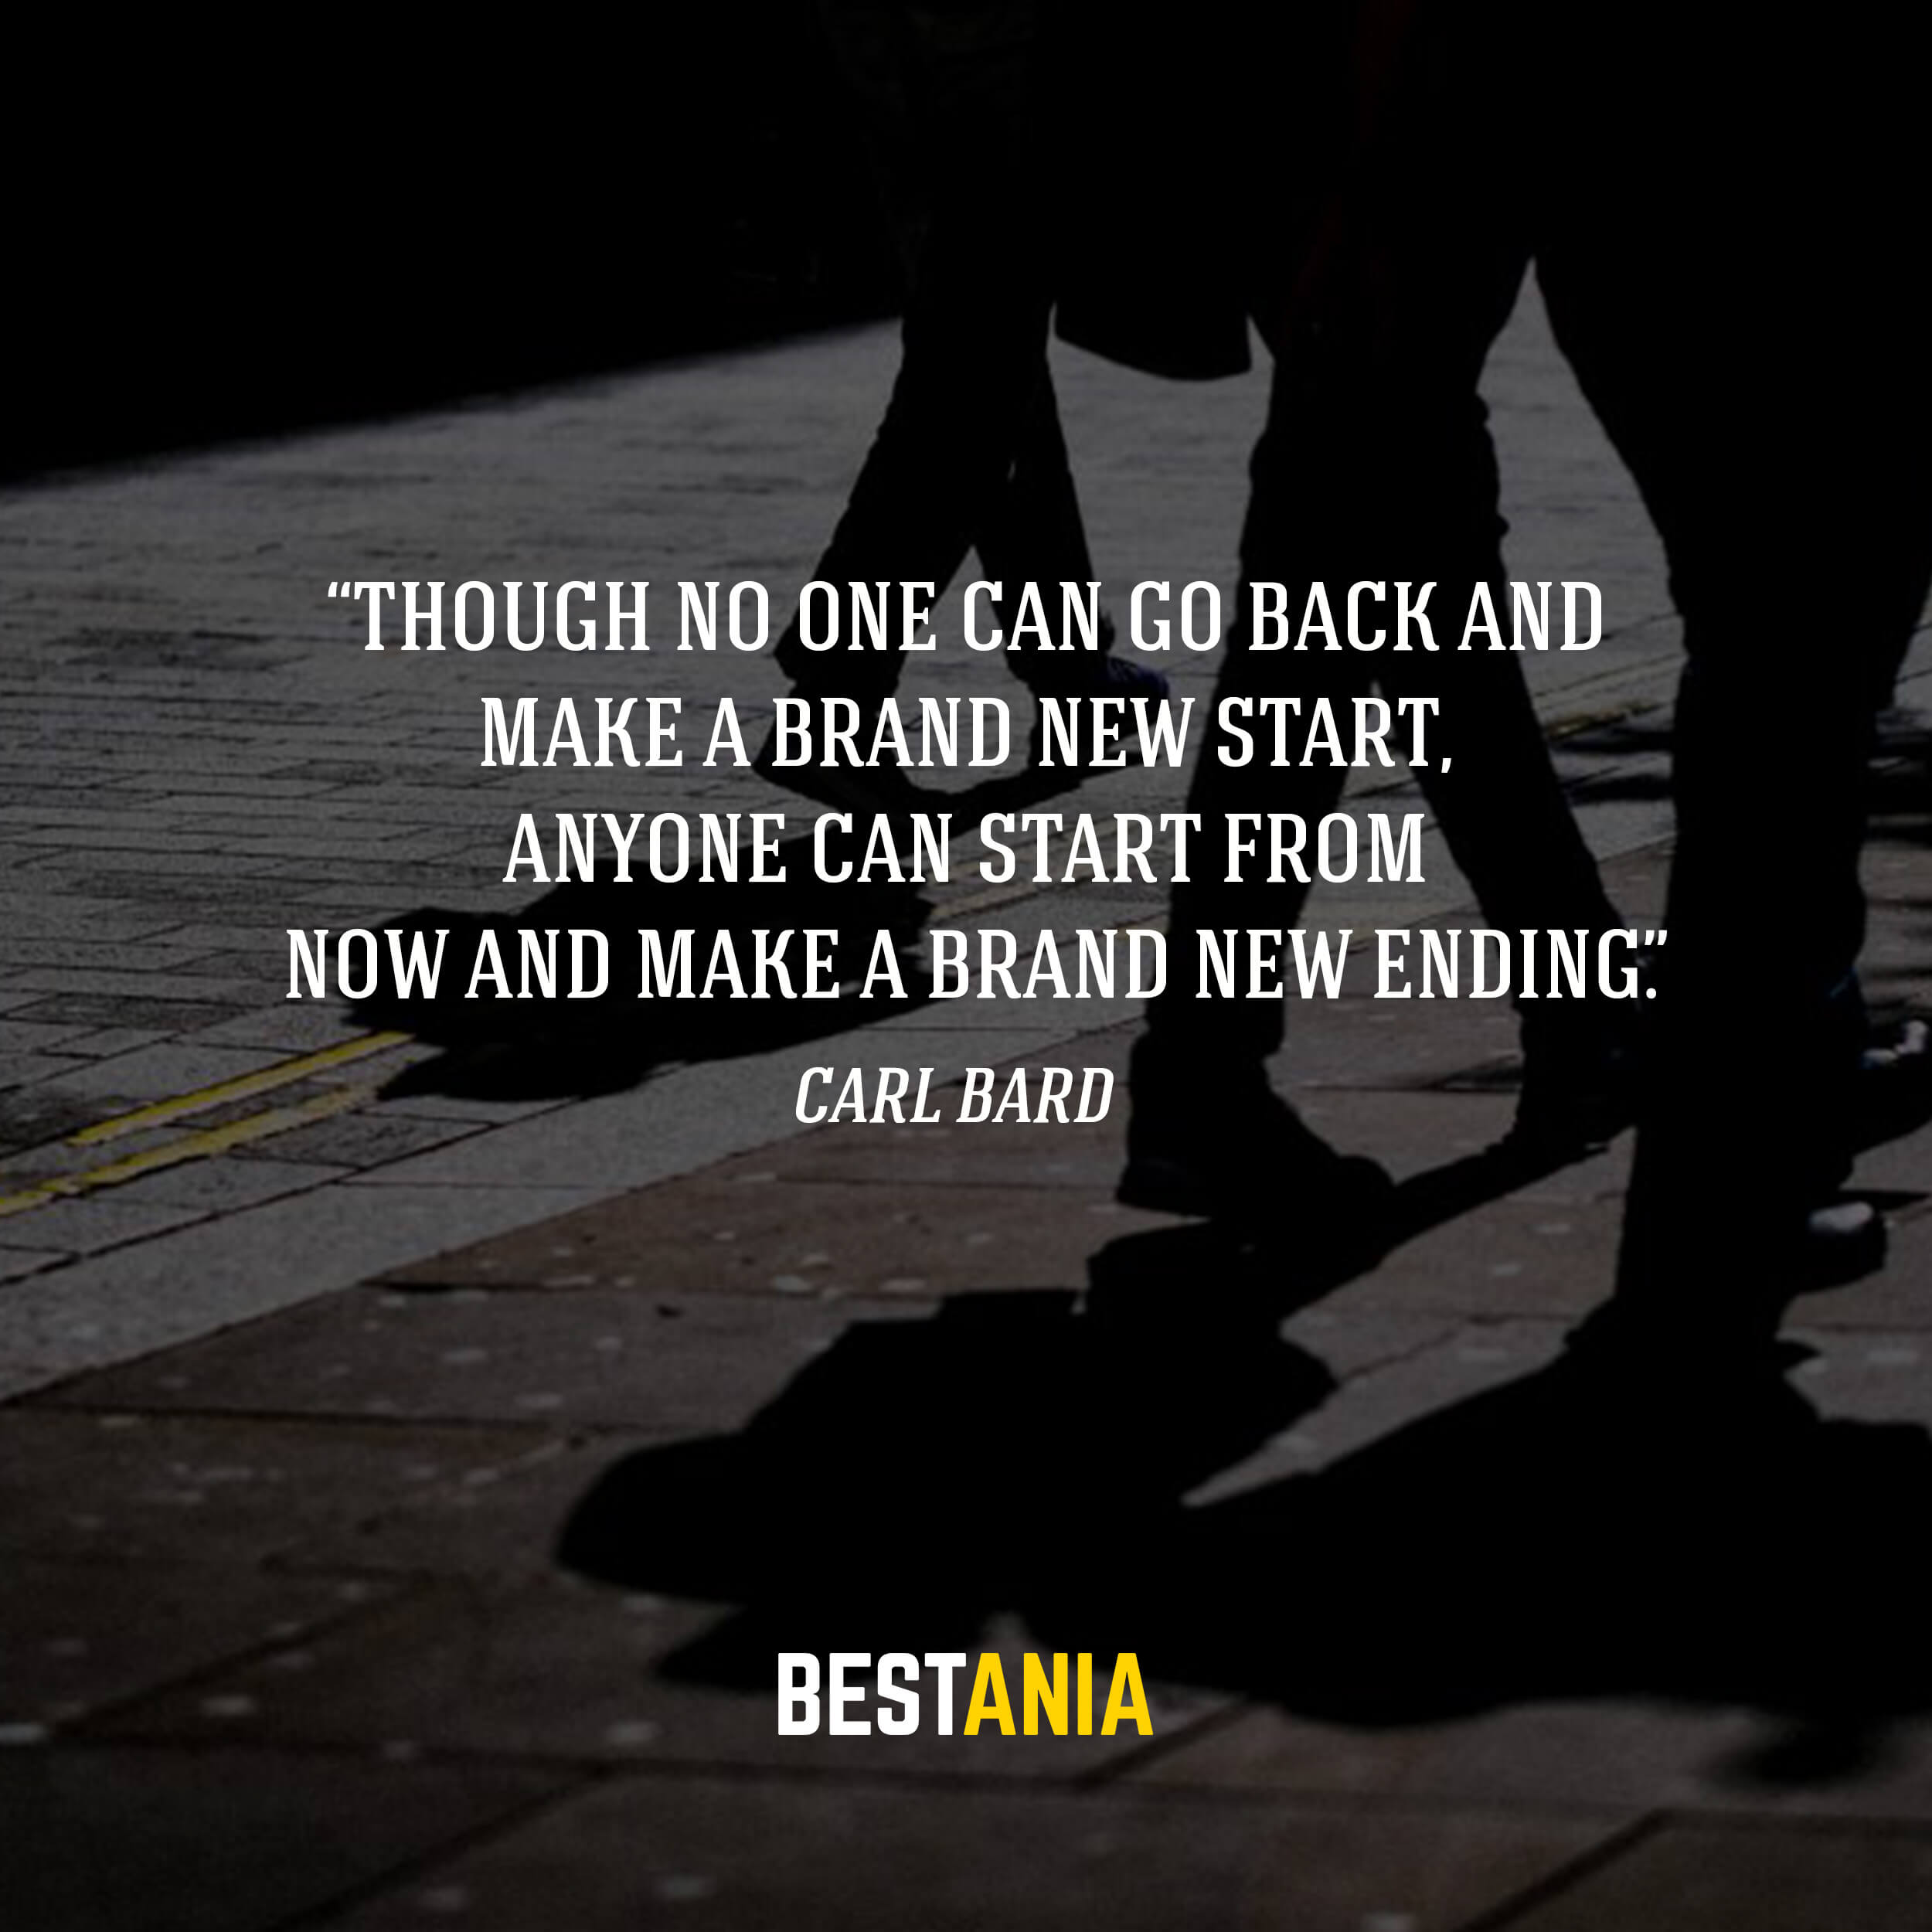 """Though no one can go back and make a brand new start, anyone can start from now and make a brand new ending."" – Carl Bard"